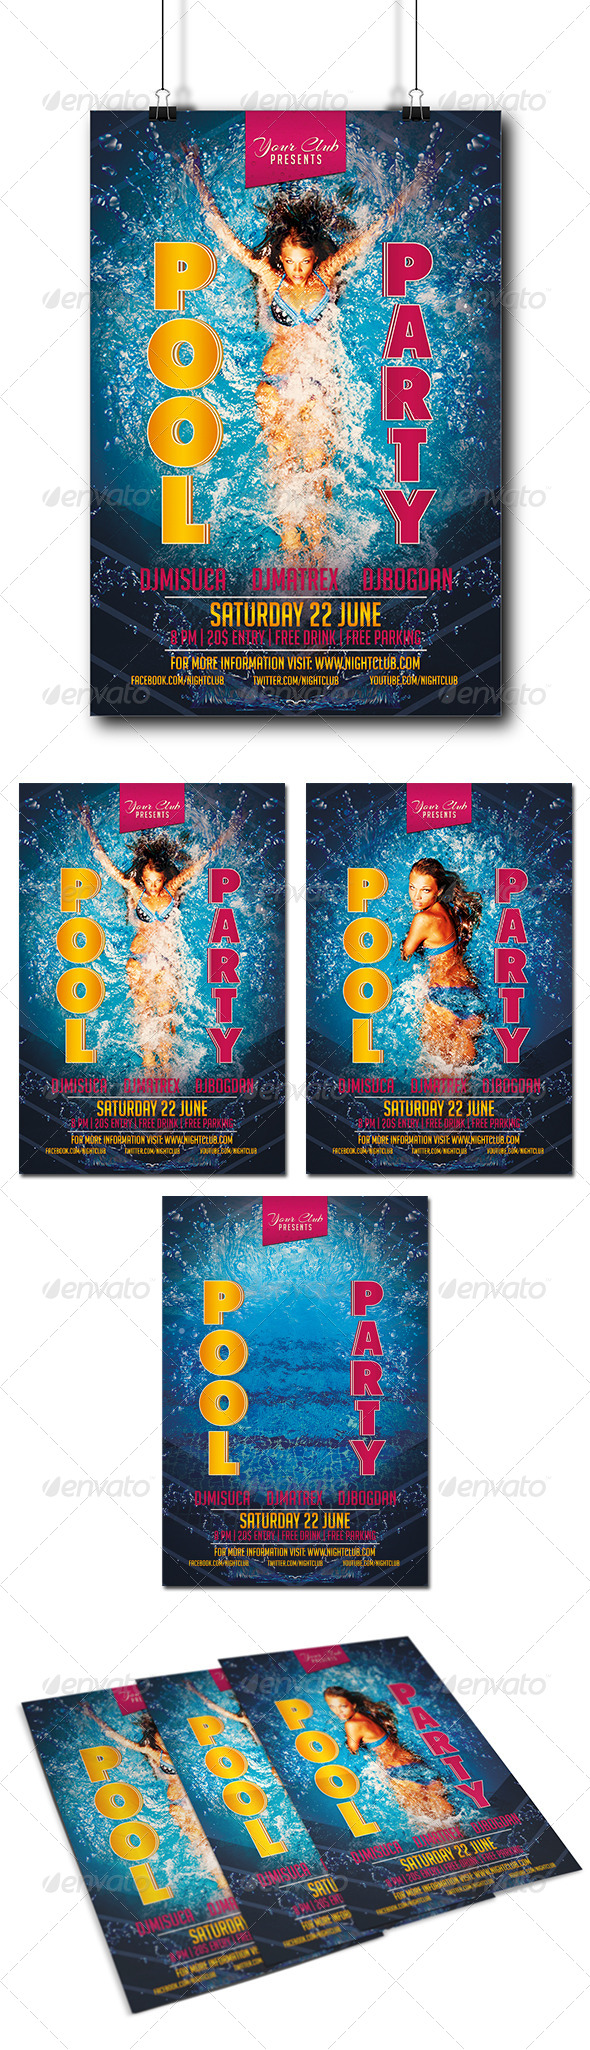 GraphicRiver Pool Party Flyer 8359096